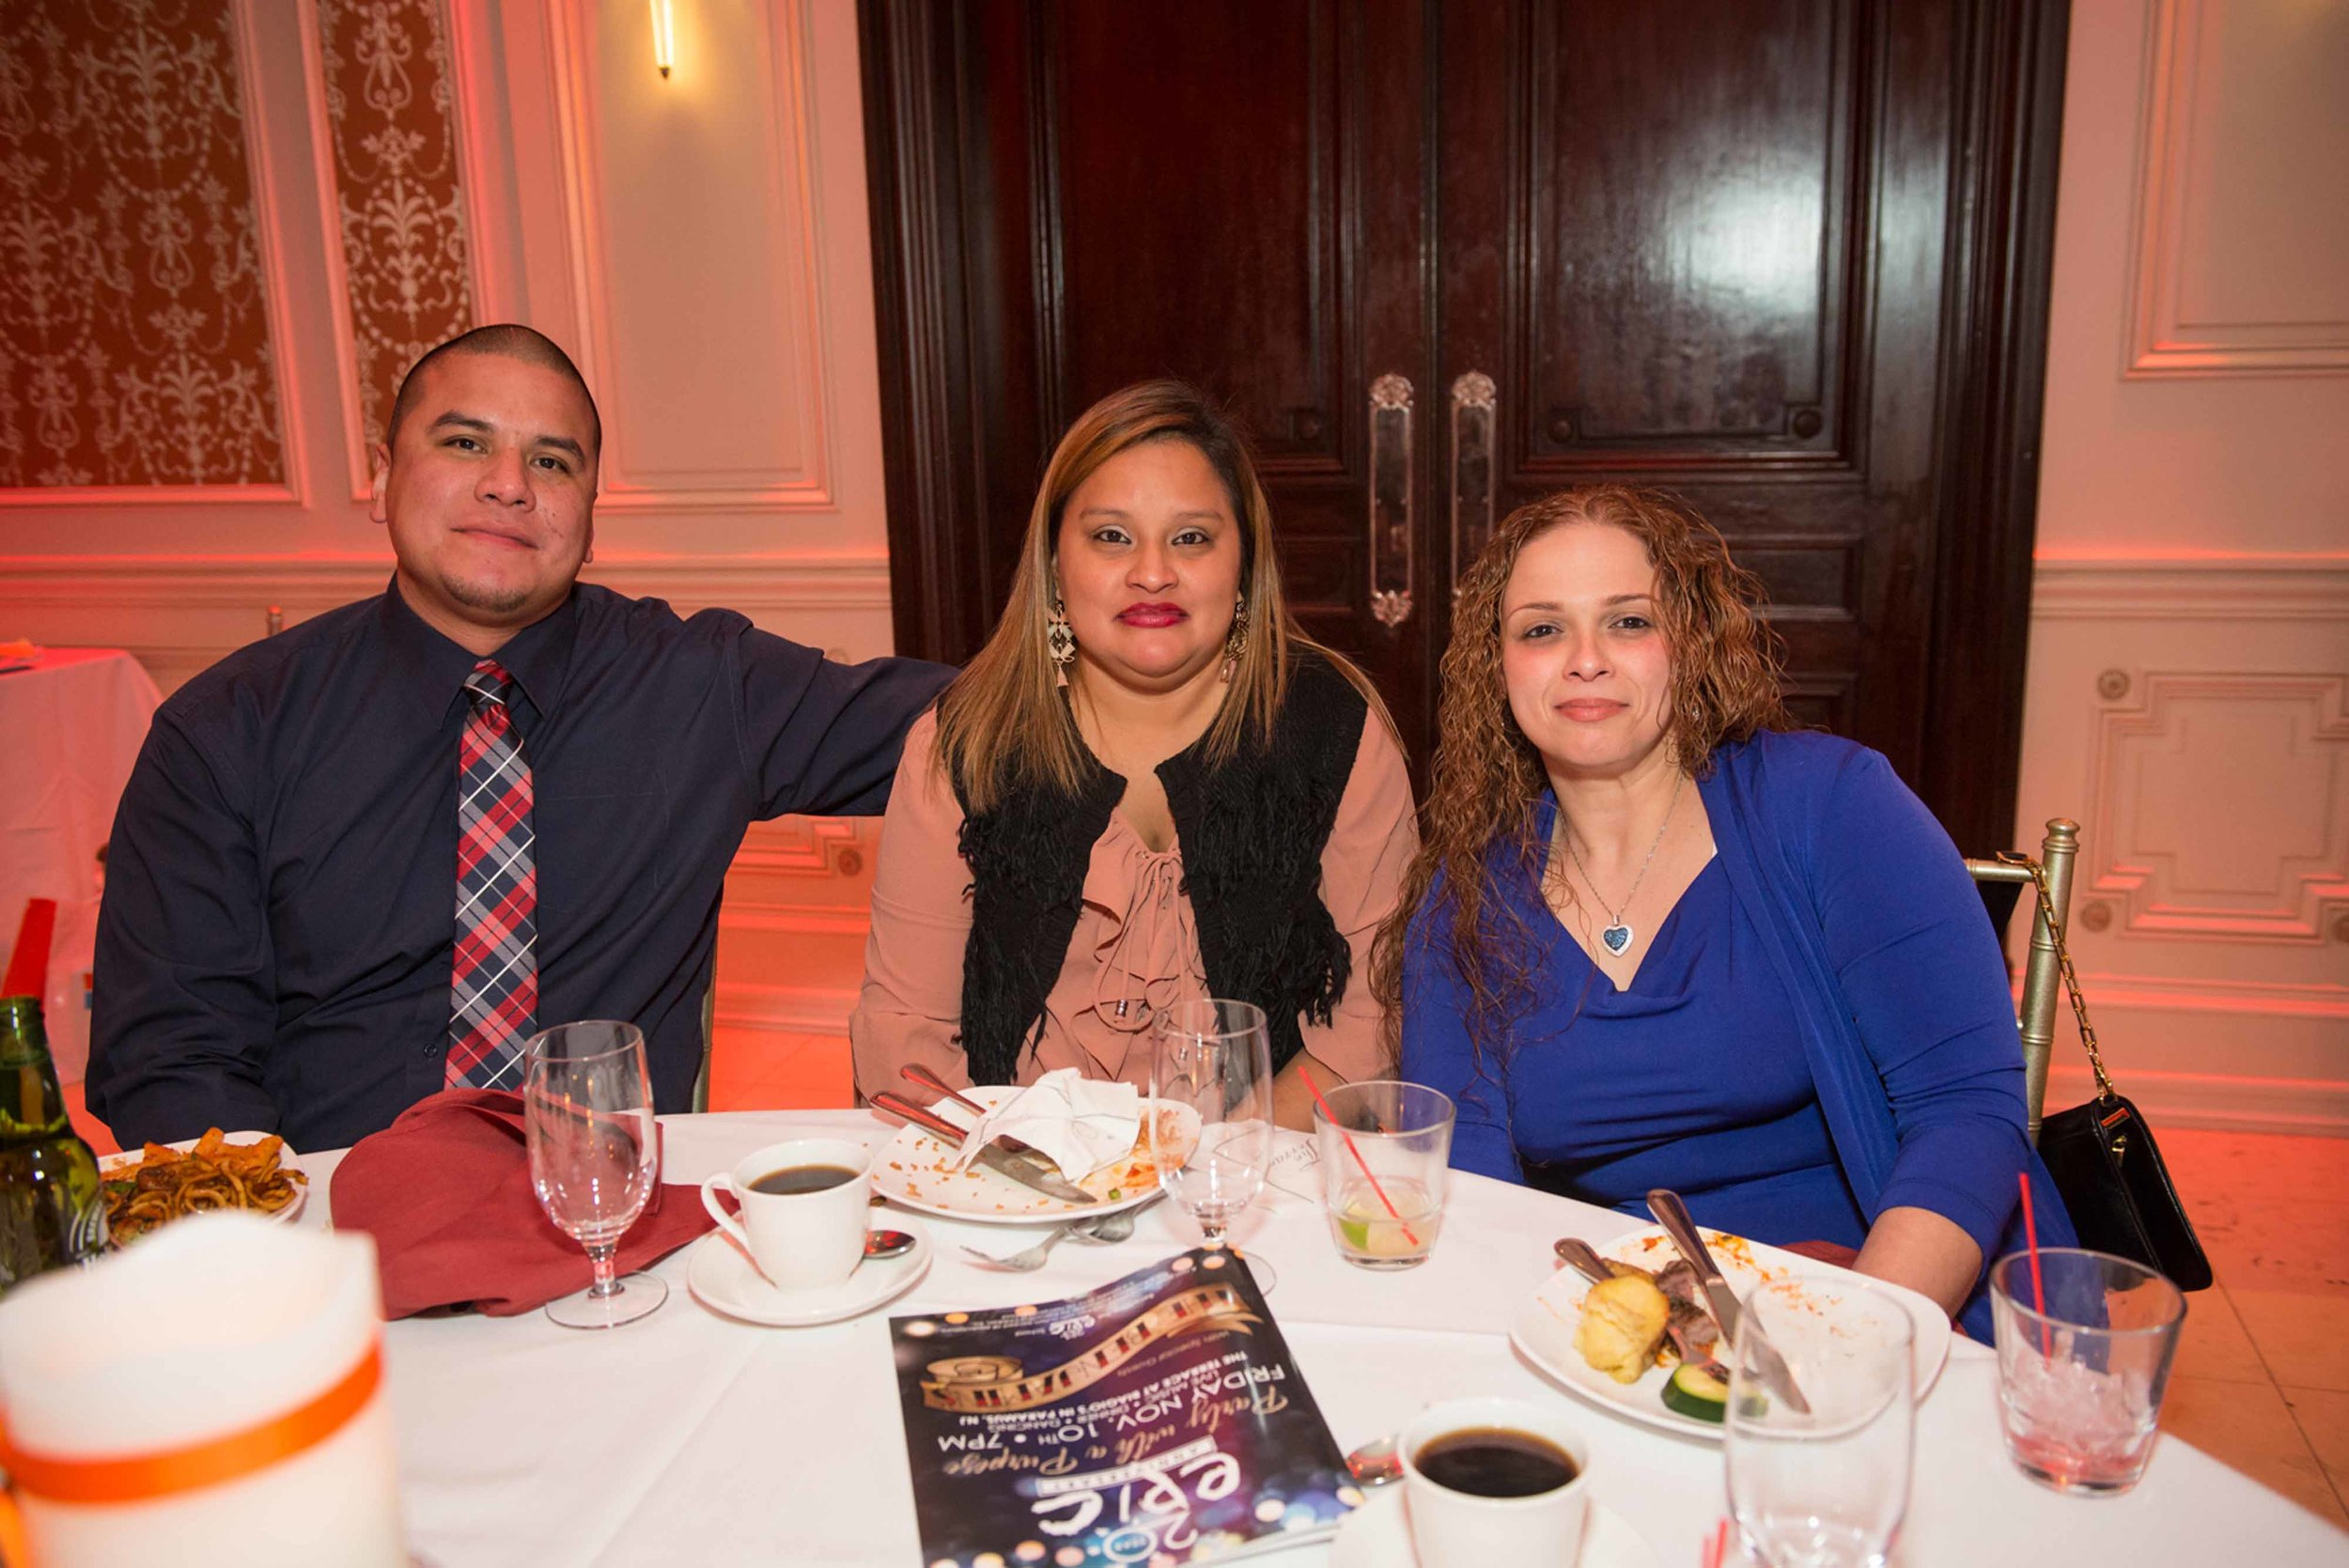 2017-11-10 The EPIC School - Party with a Purpose - Biagios on the Terrace - Paramus NJ-228.jpg